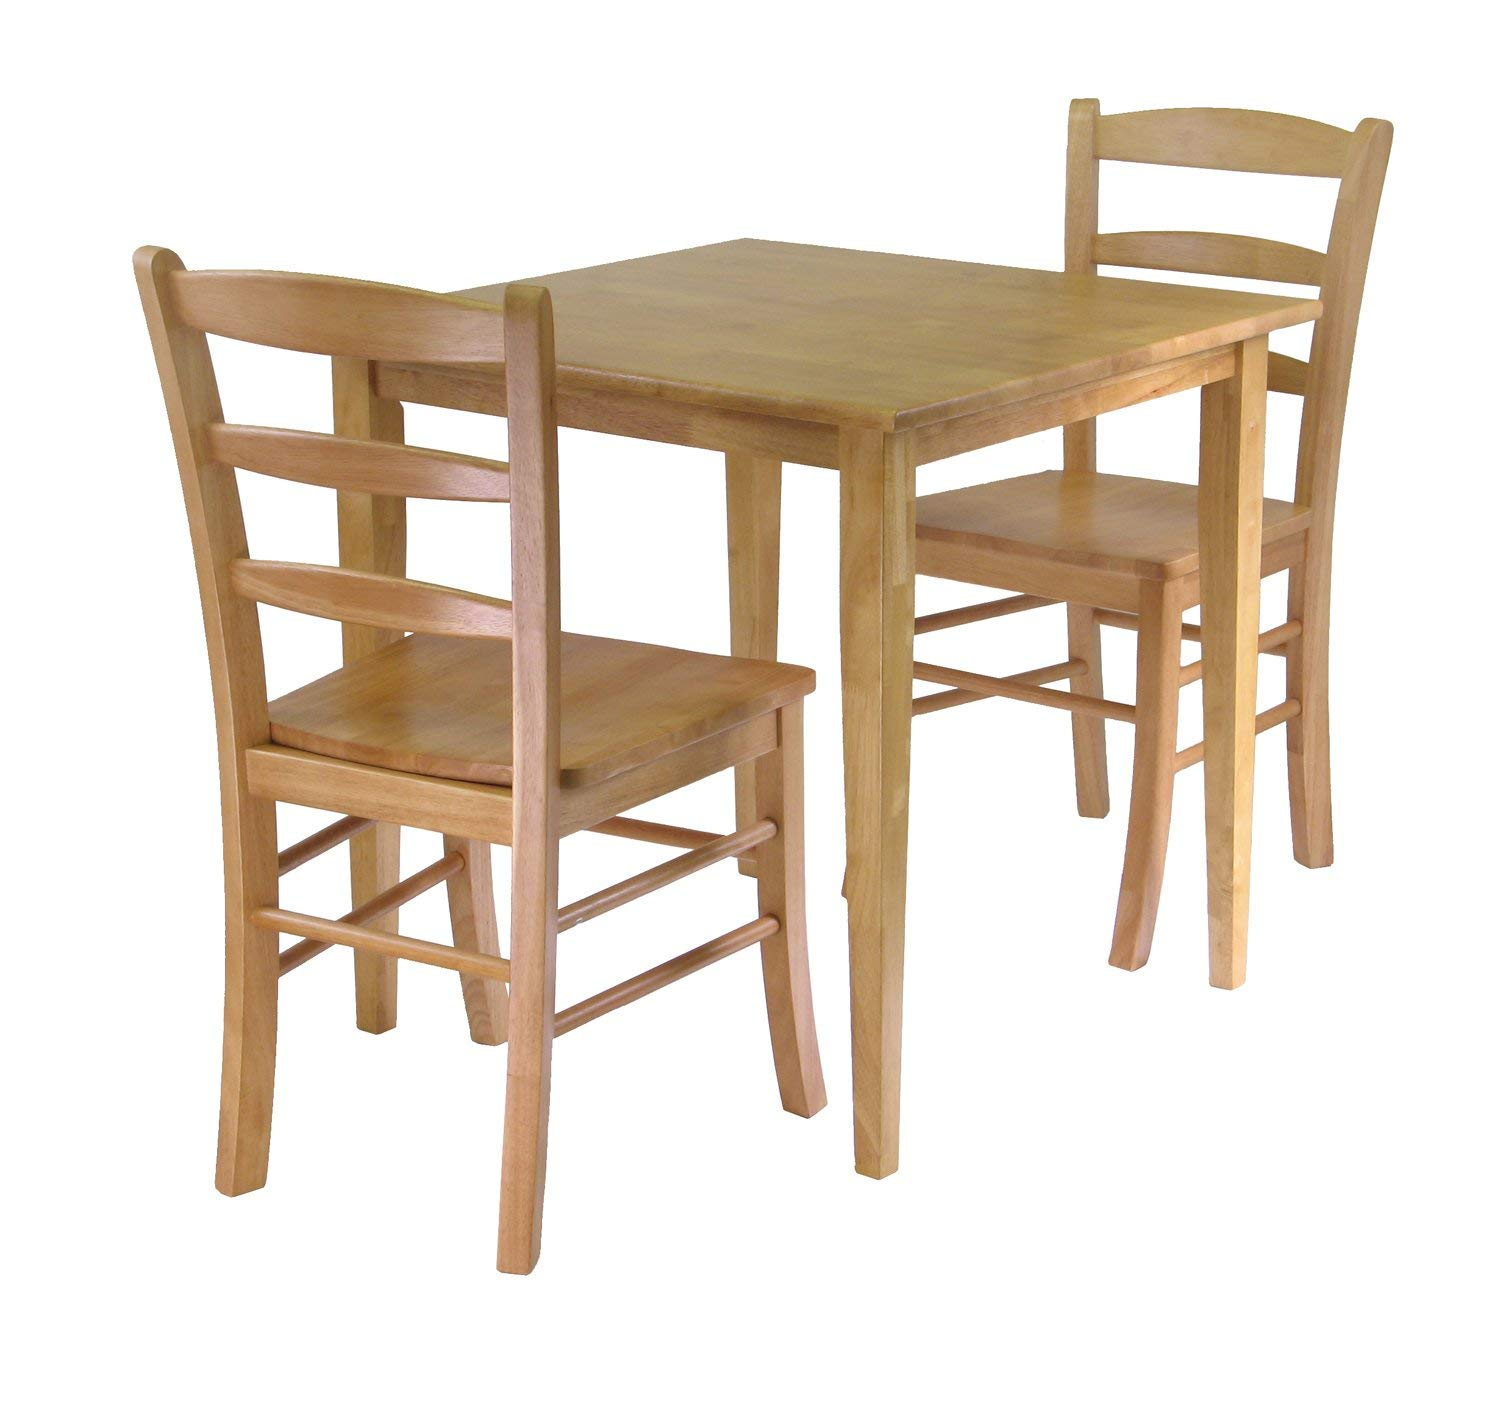 Winsome Groveland 3-Piece Wood Dining Set, Light Oak Finish